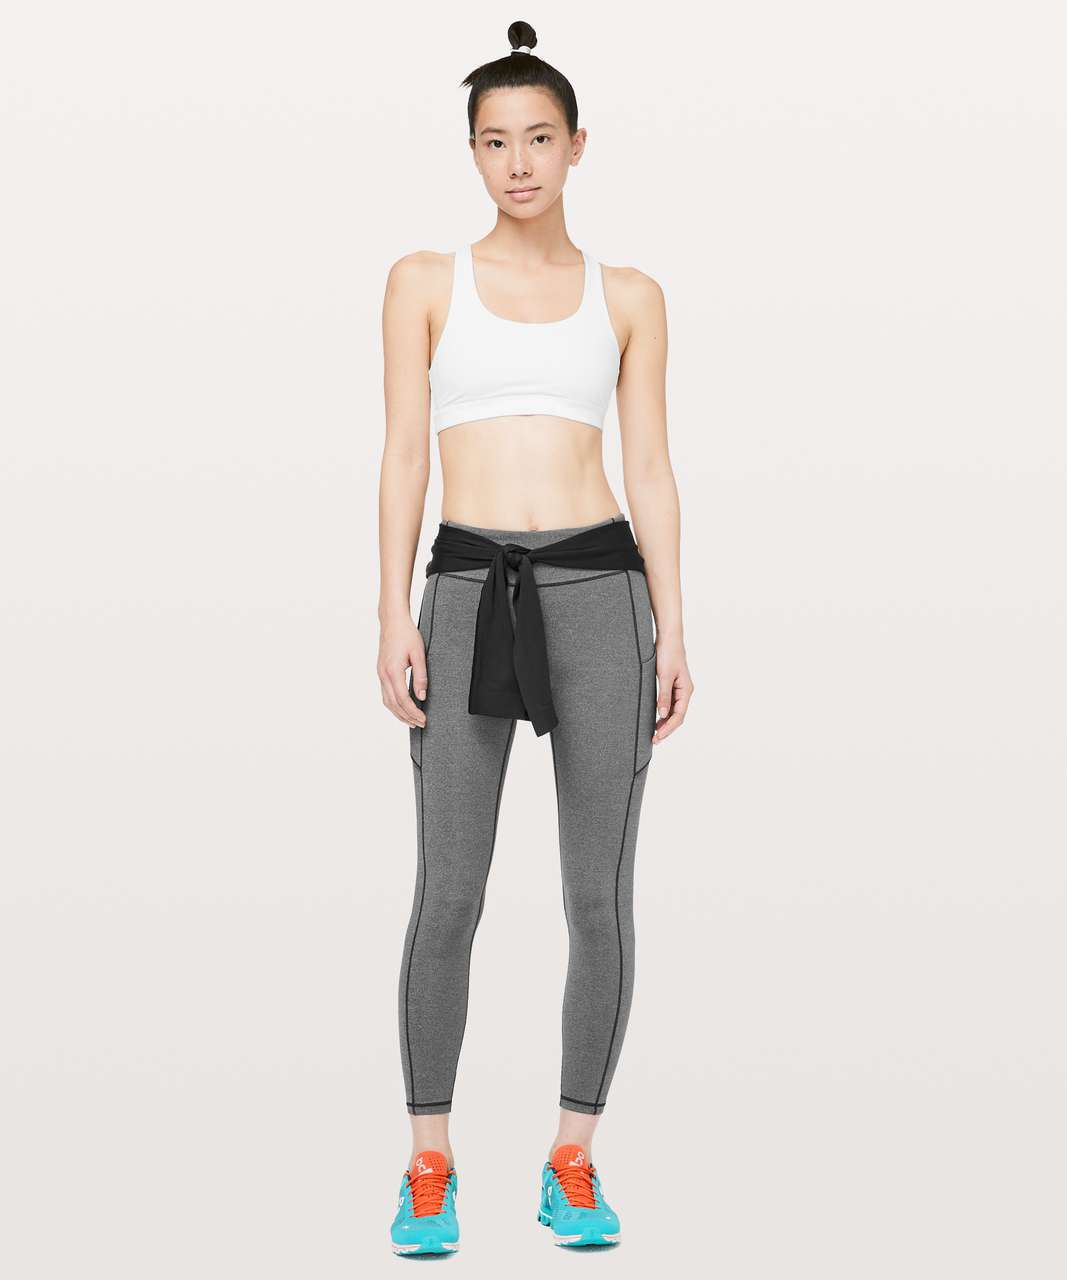 Lululemon Speed Up 7/8 Tight - Heathered Black